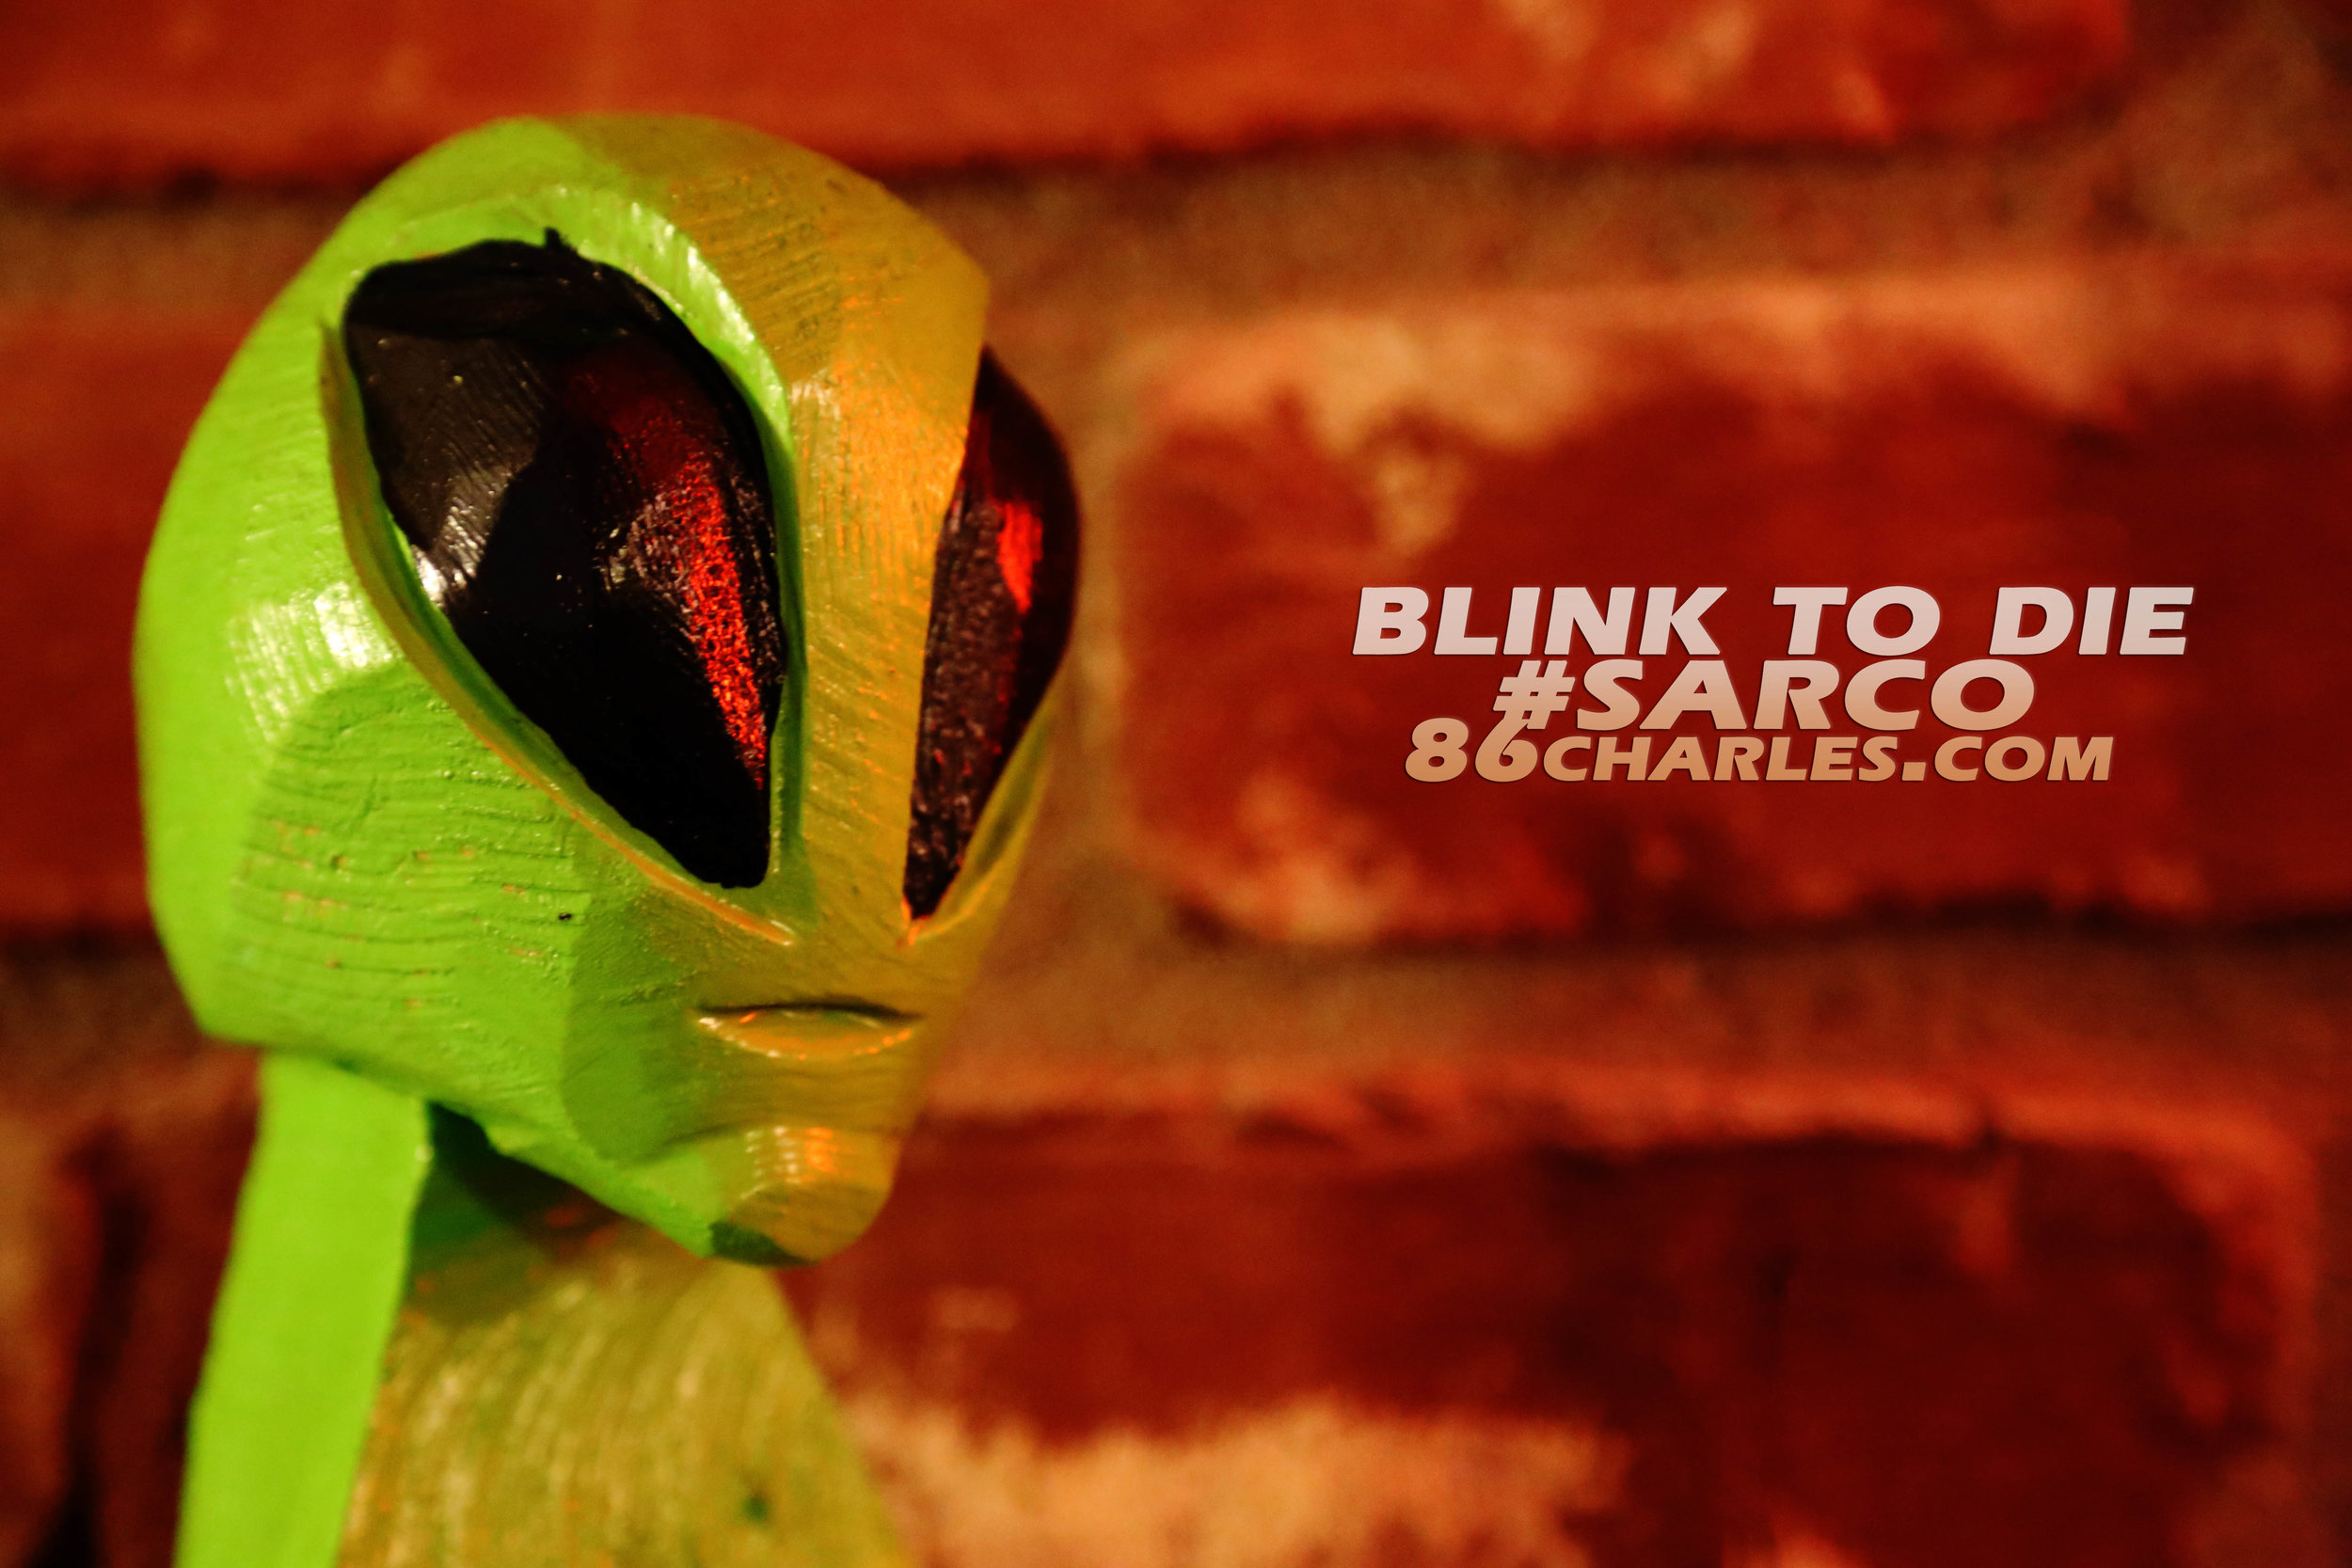 Blink to Die #Sarco